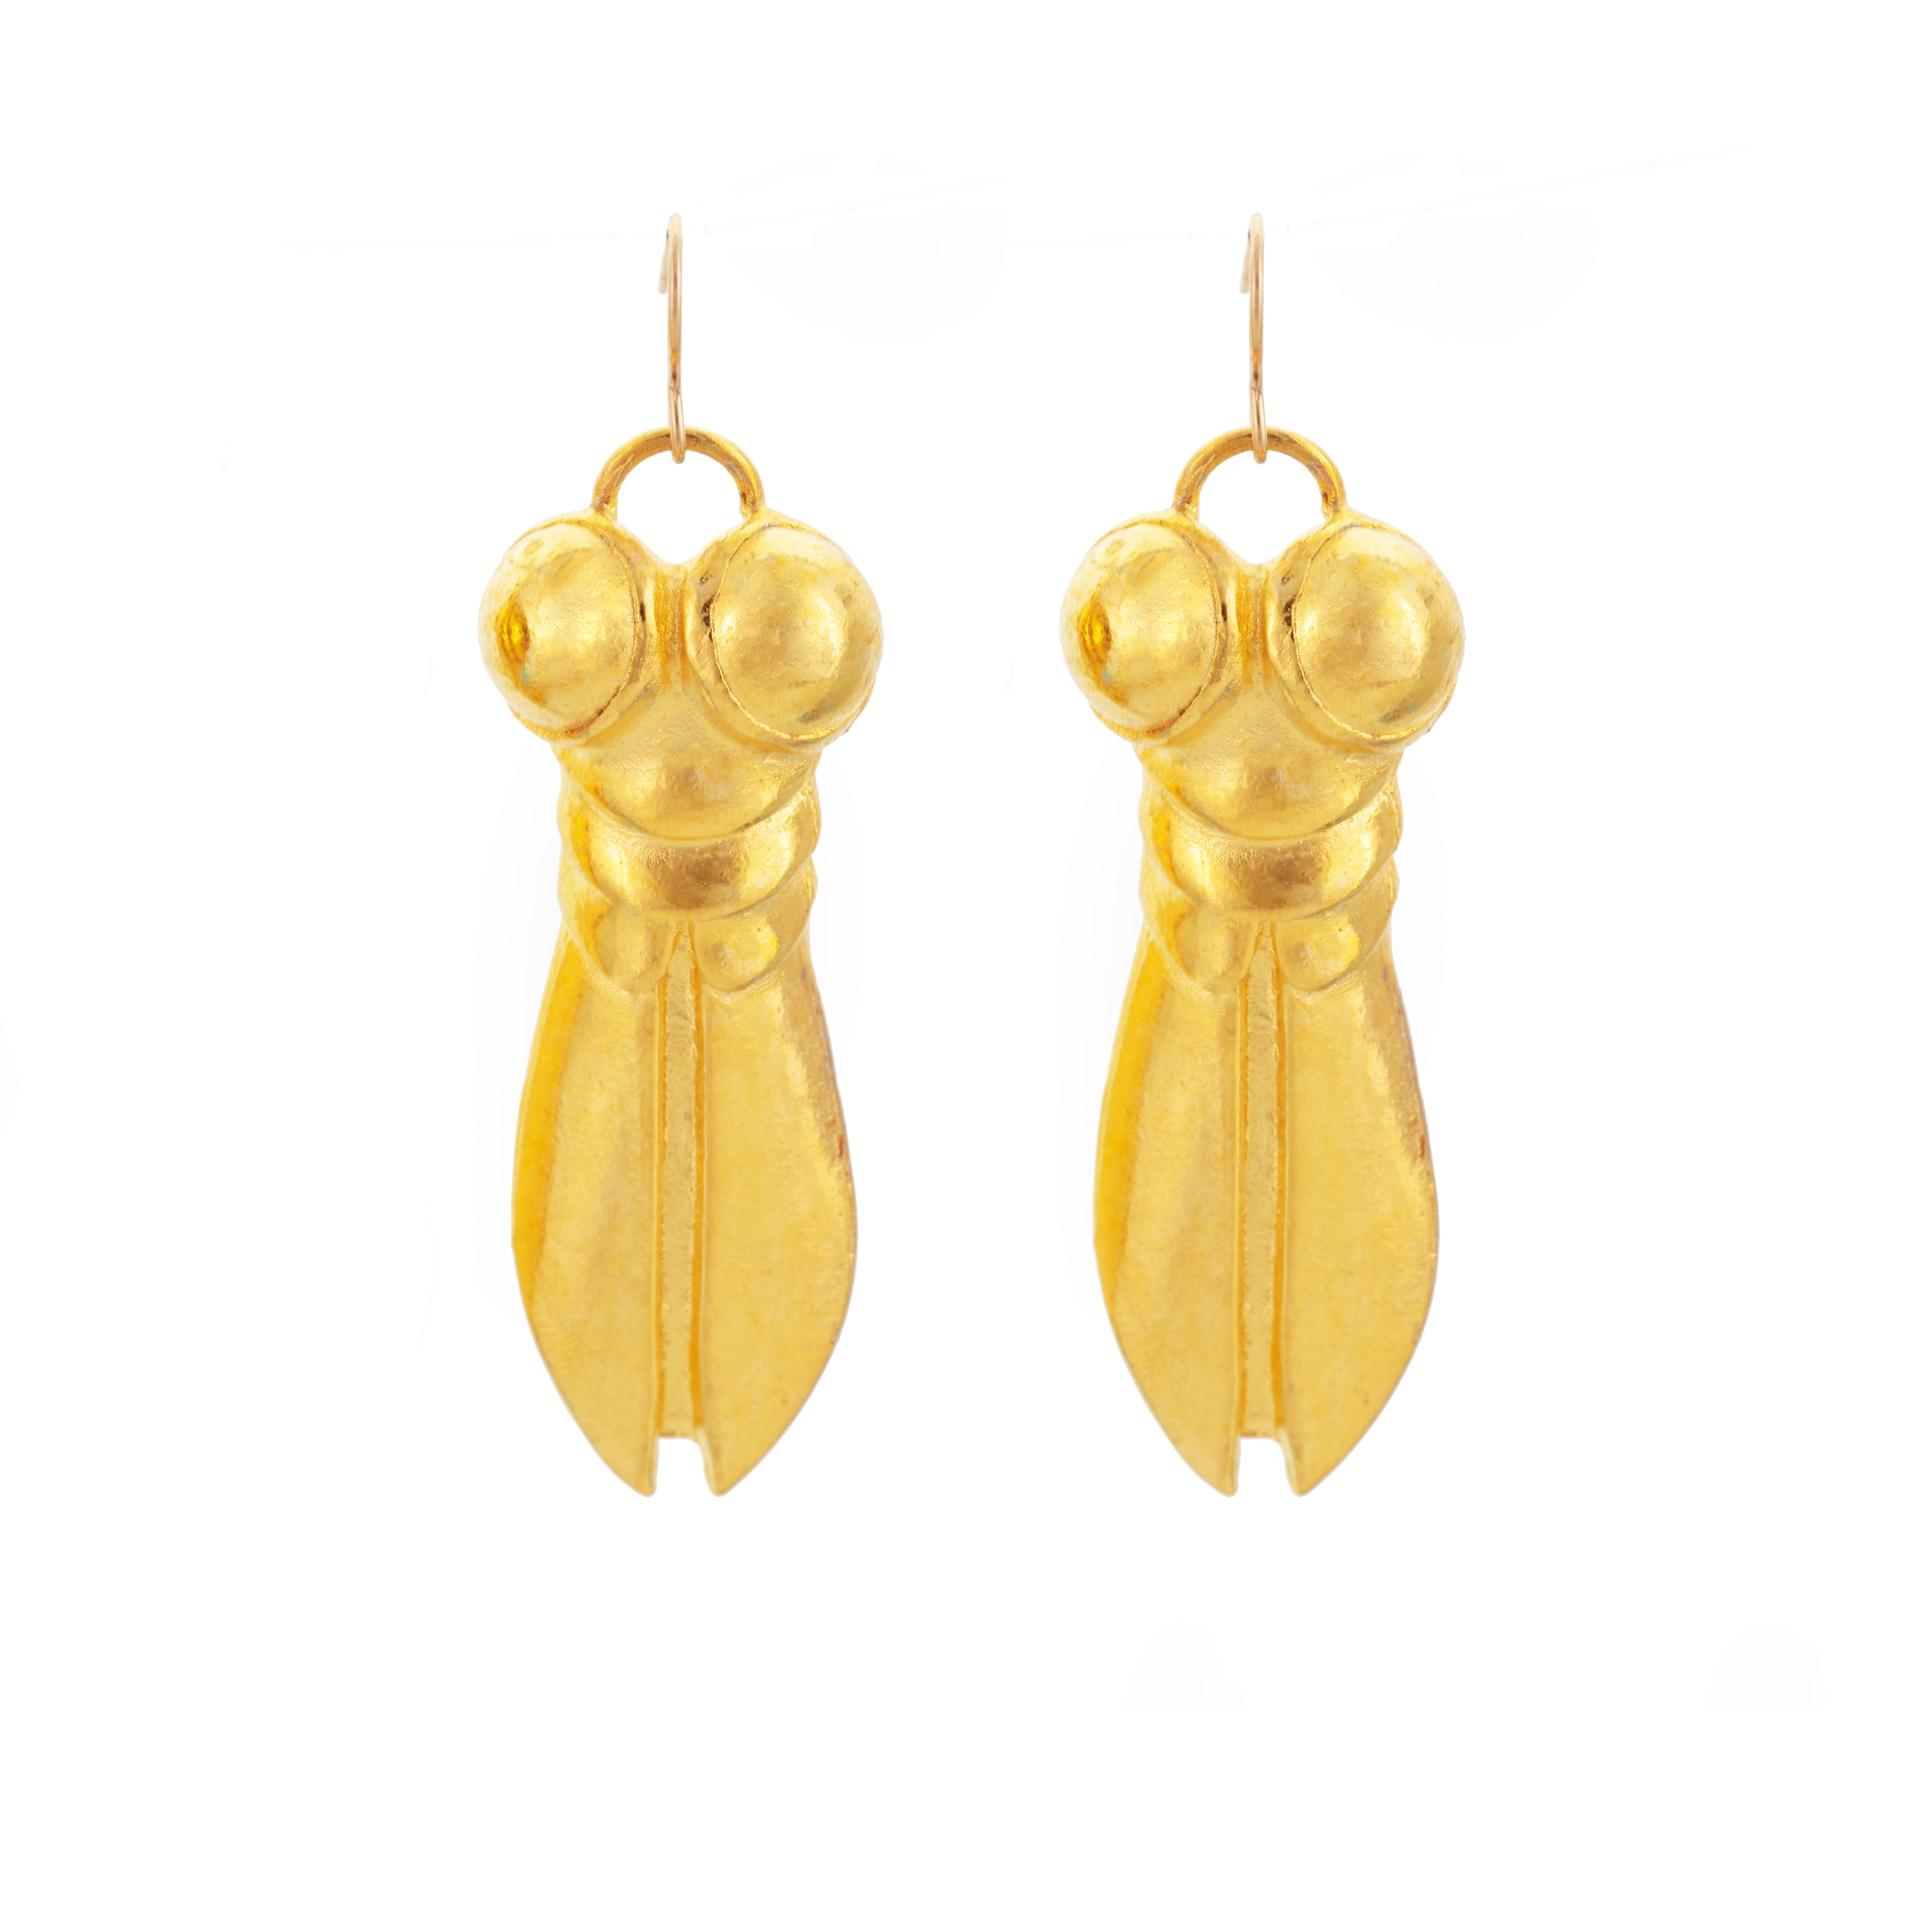 Gold-Plate Superfly Earrings